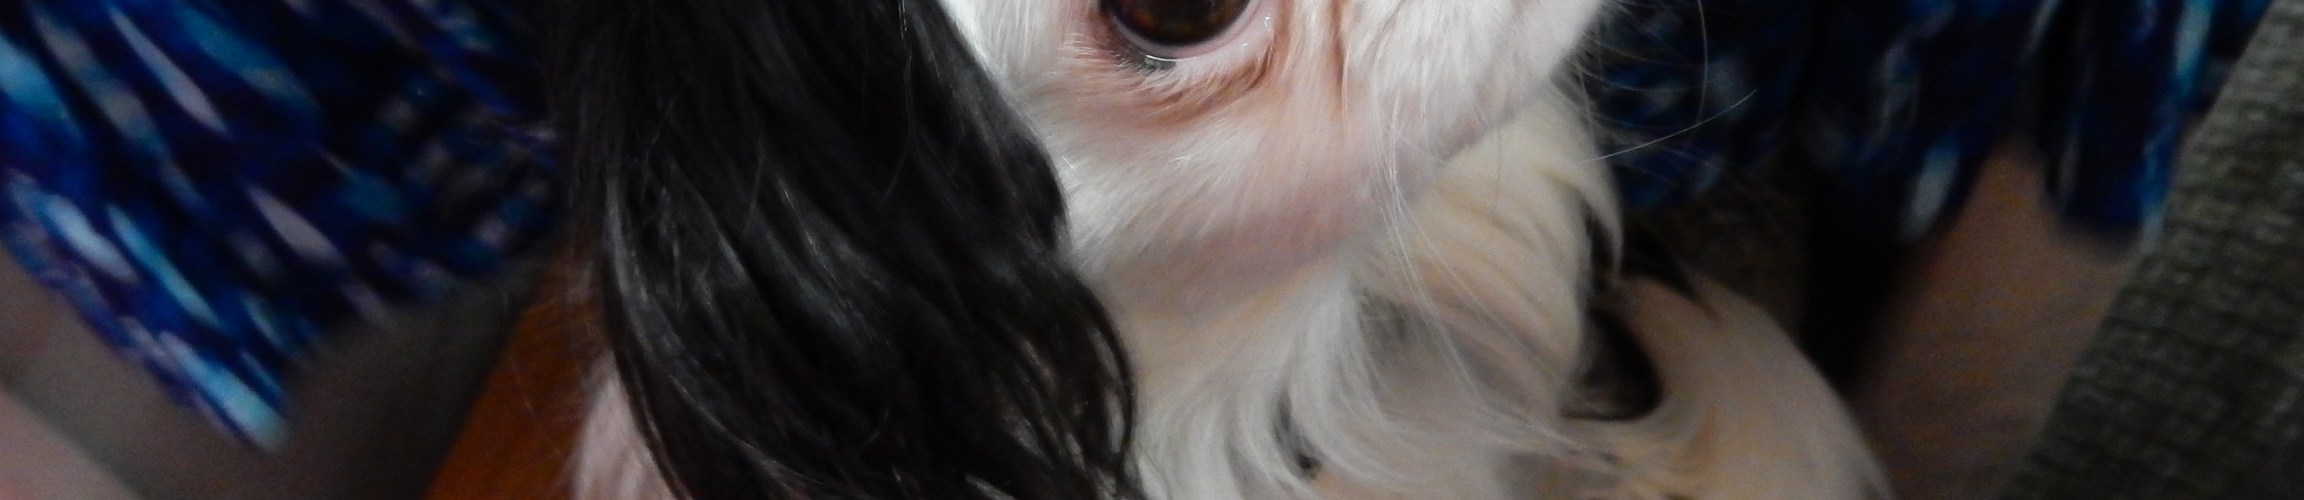 Closeup of Hestia's face. She is a black and white small dog. Only one eye is surrounded with black, the other eye is surrounded with white.